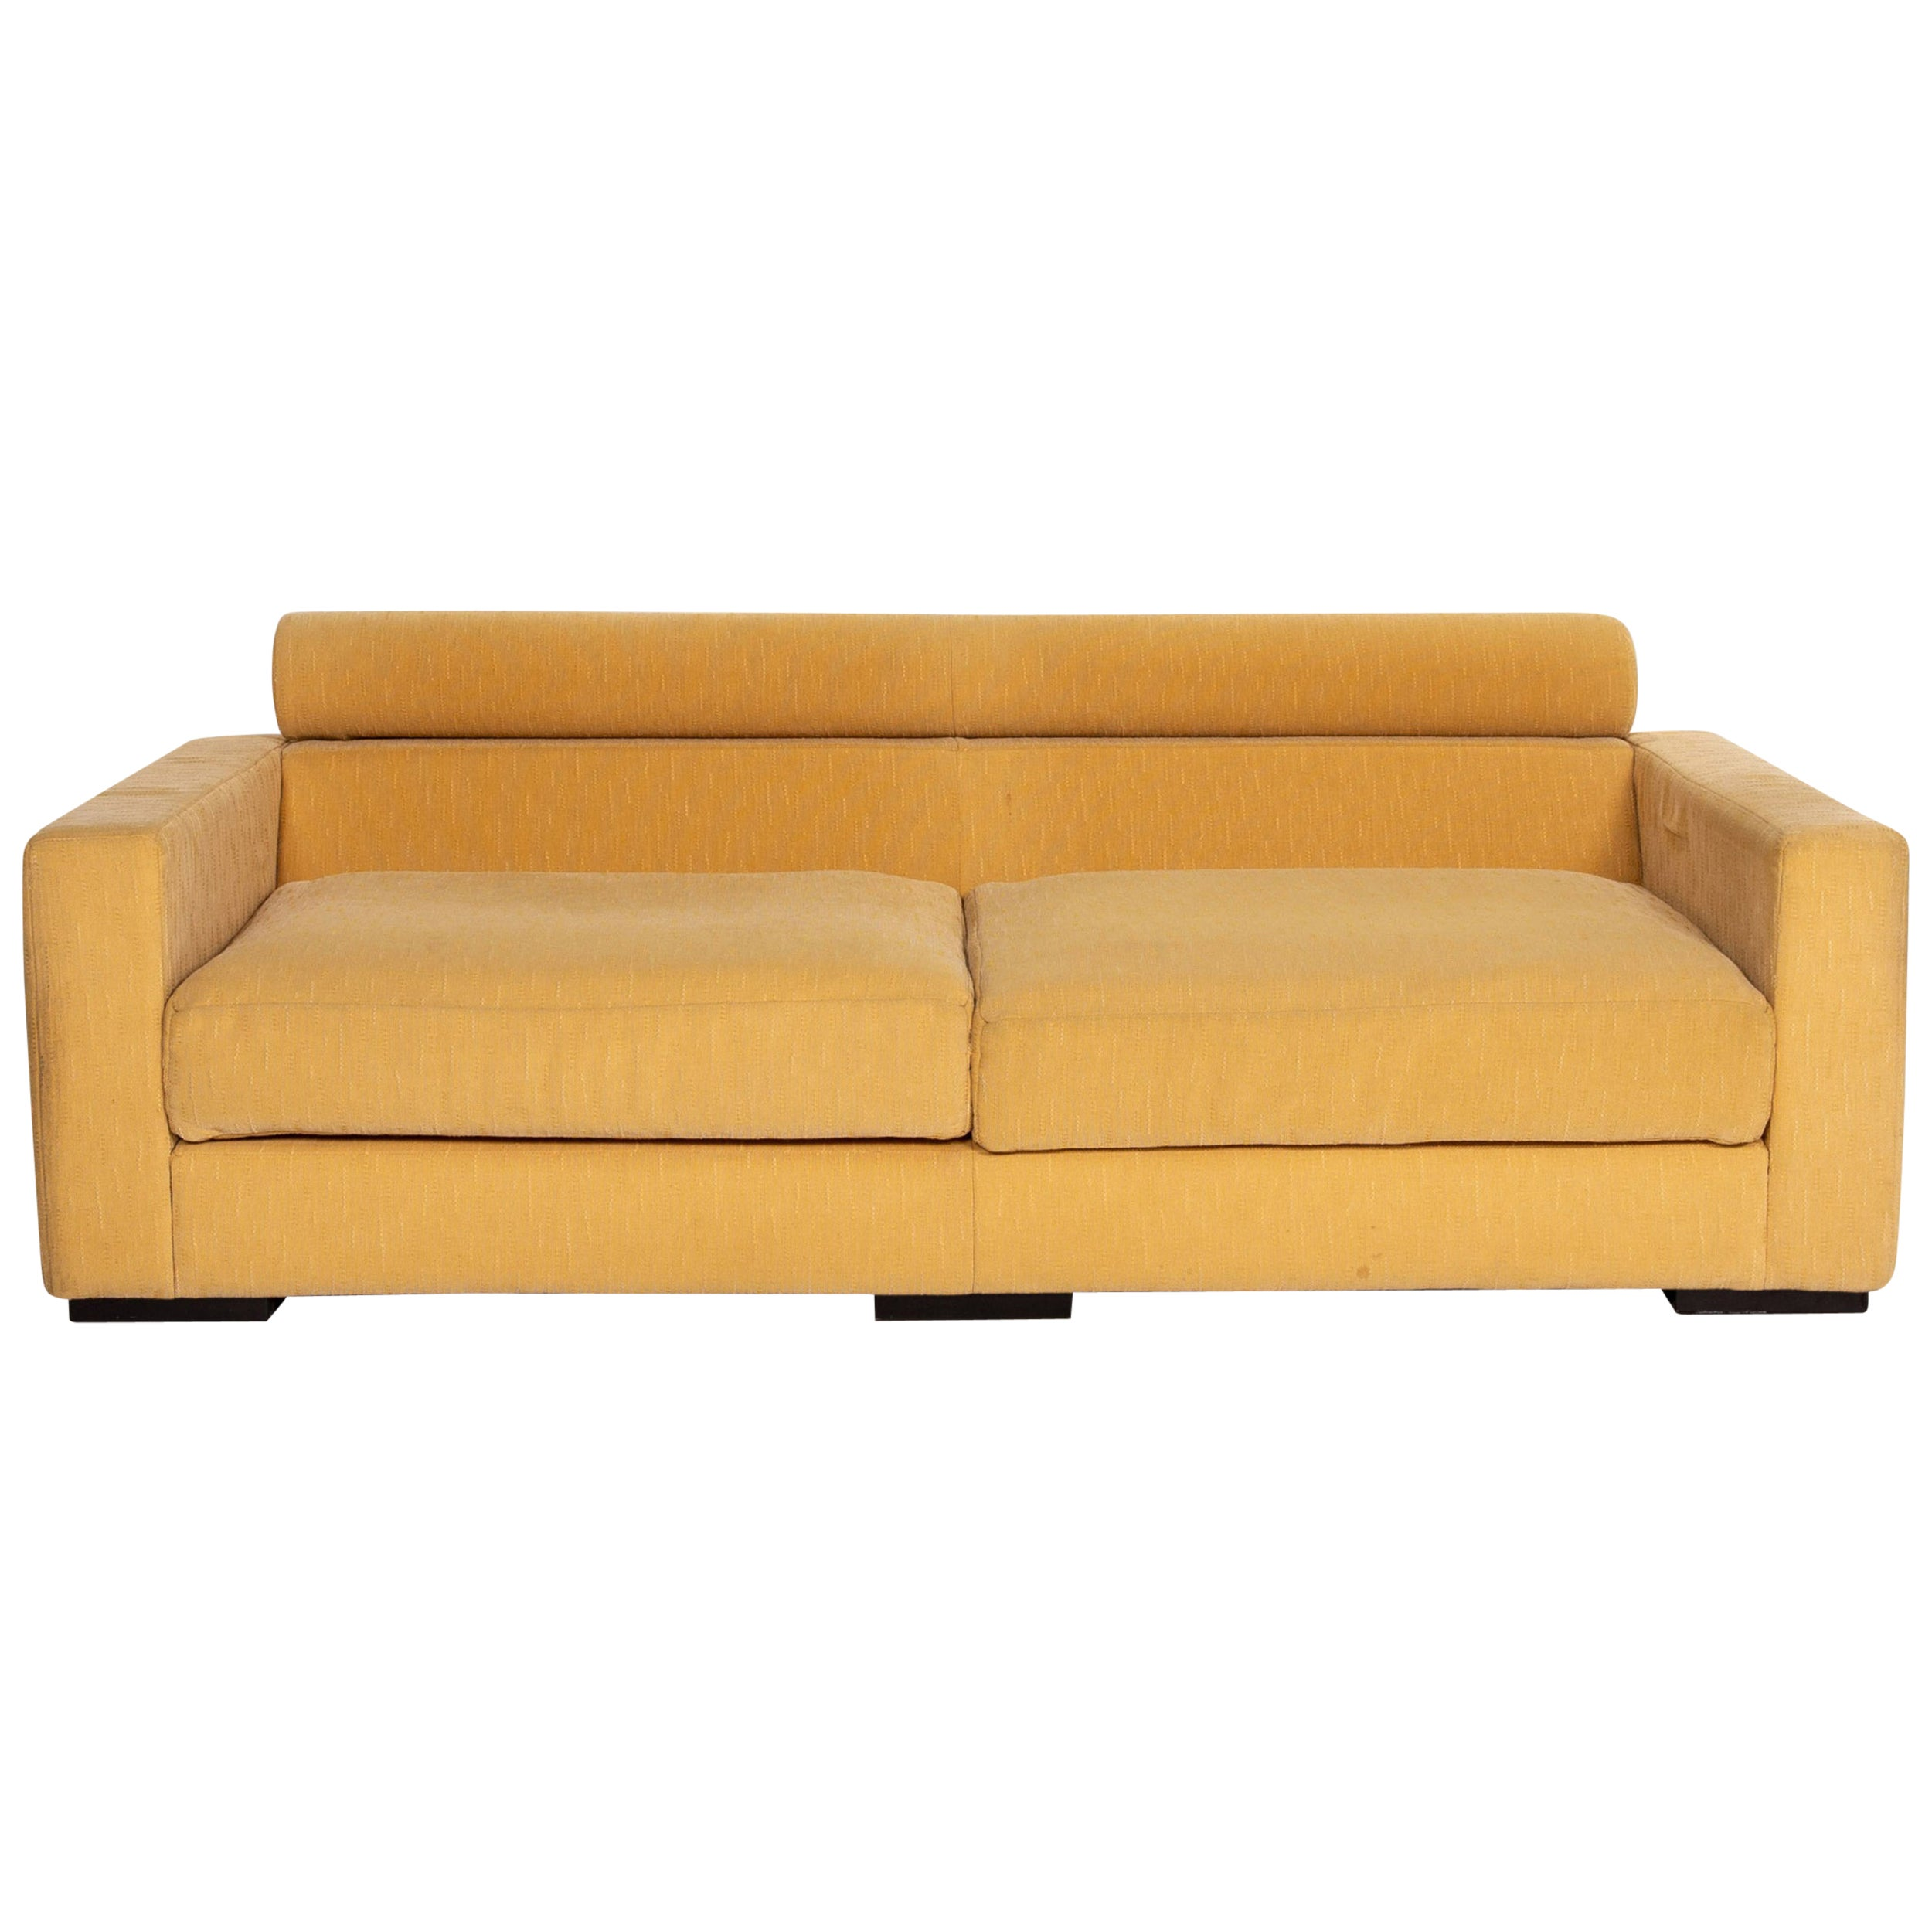 Roche Bobois Fabric Sofa Yellow Two-Seat Function Couch